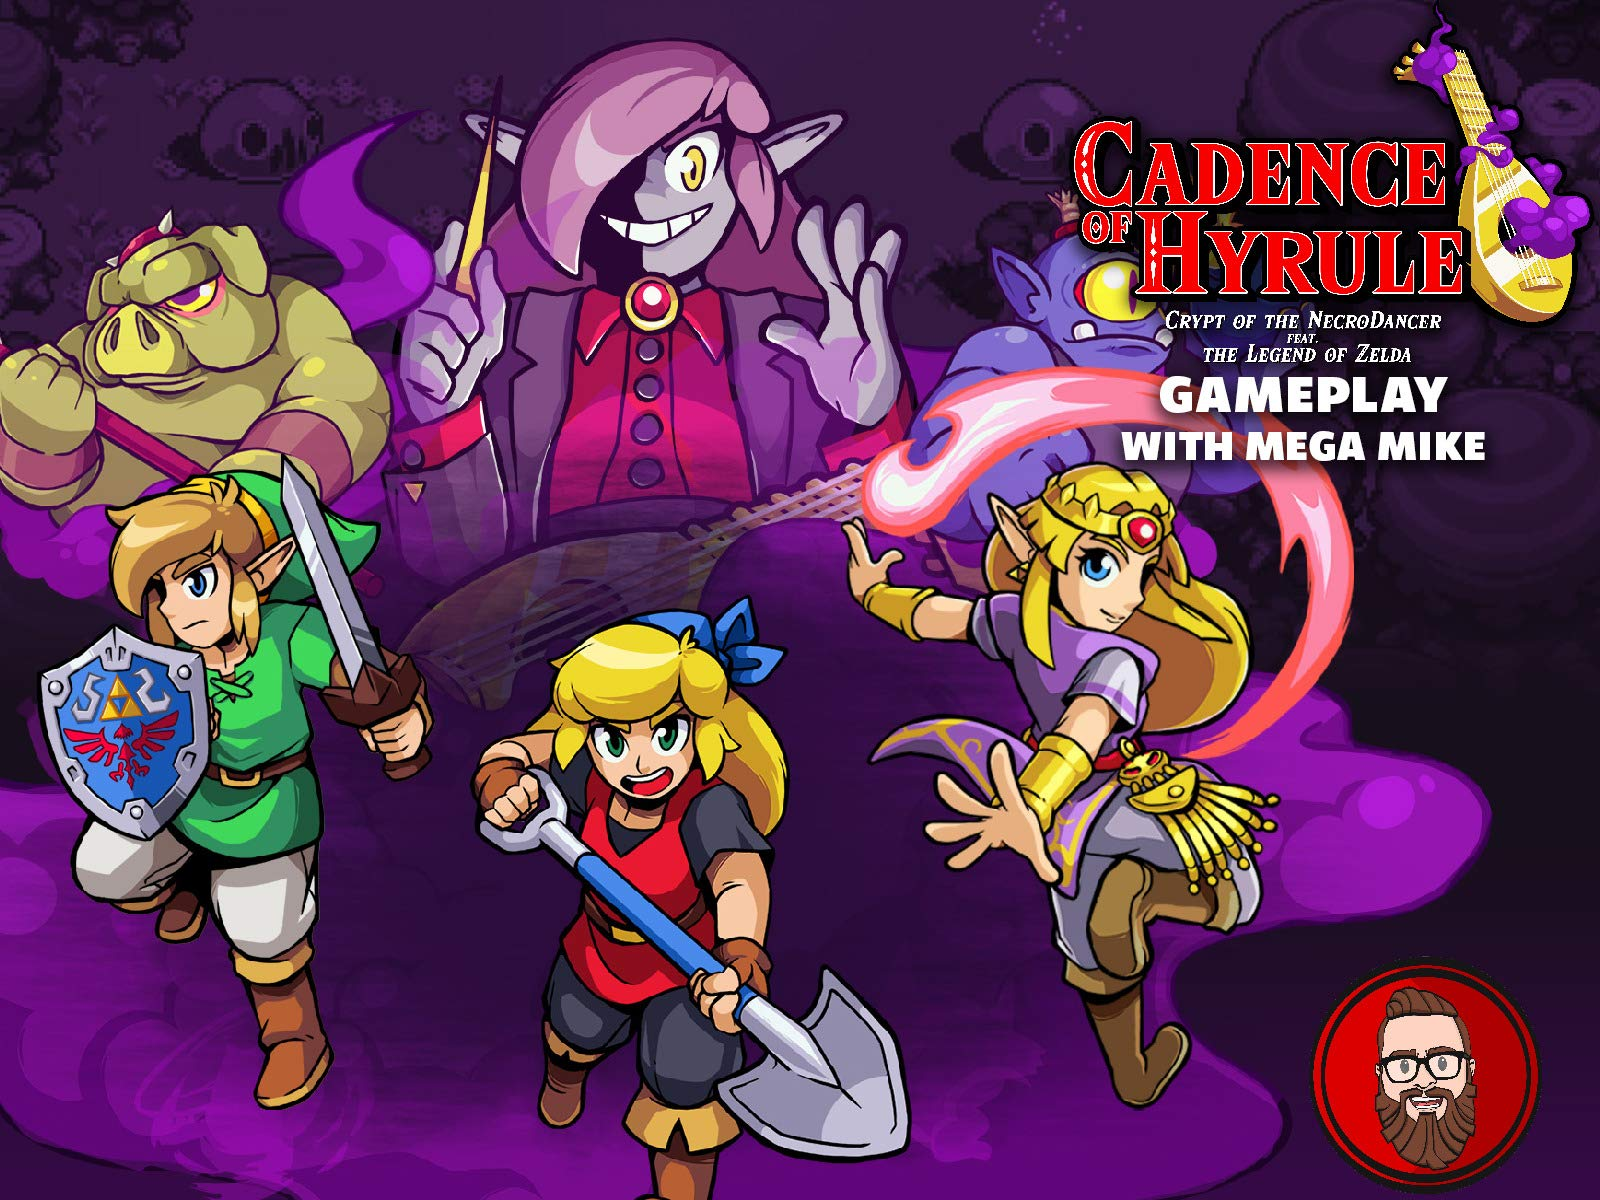 Watch Cadence Of Hyrule Crypt Of The Necrodancer Feat The Legend Of Zelda Gameplay With Mega Mike Prime Video